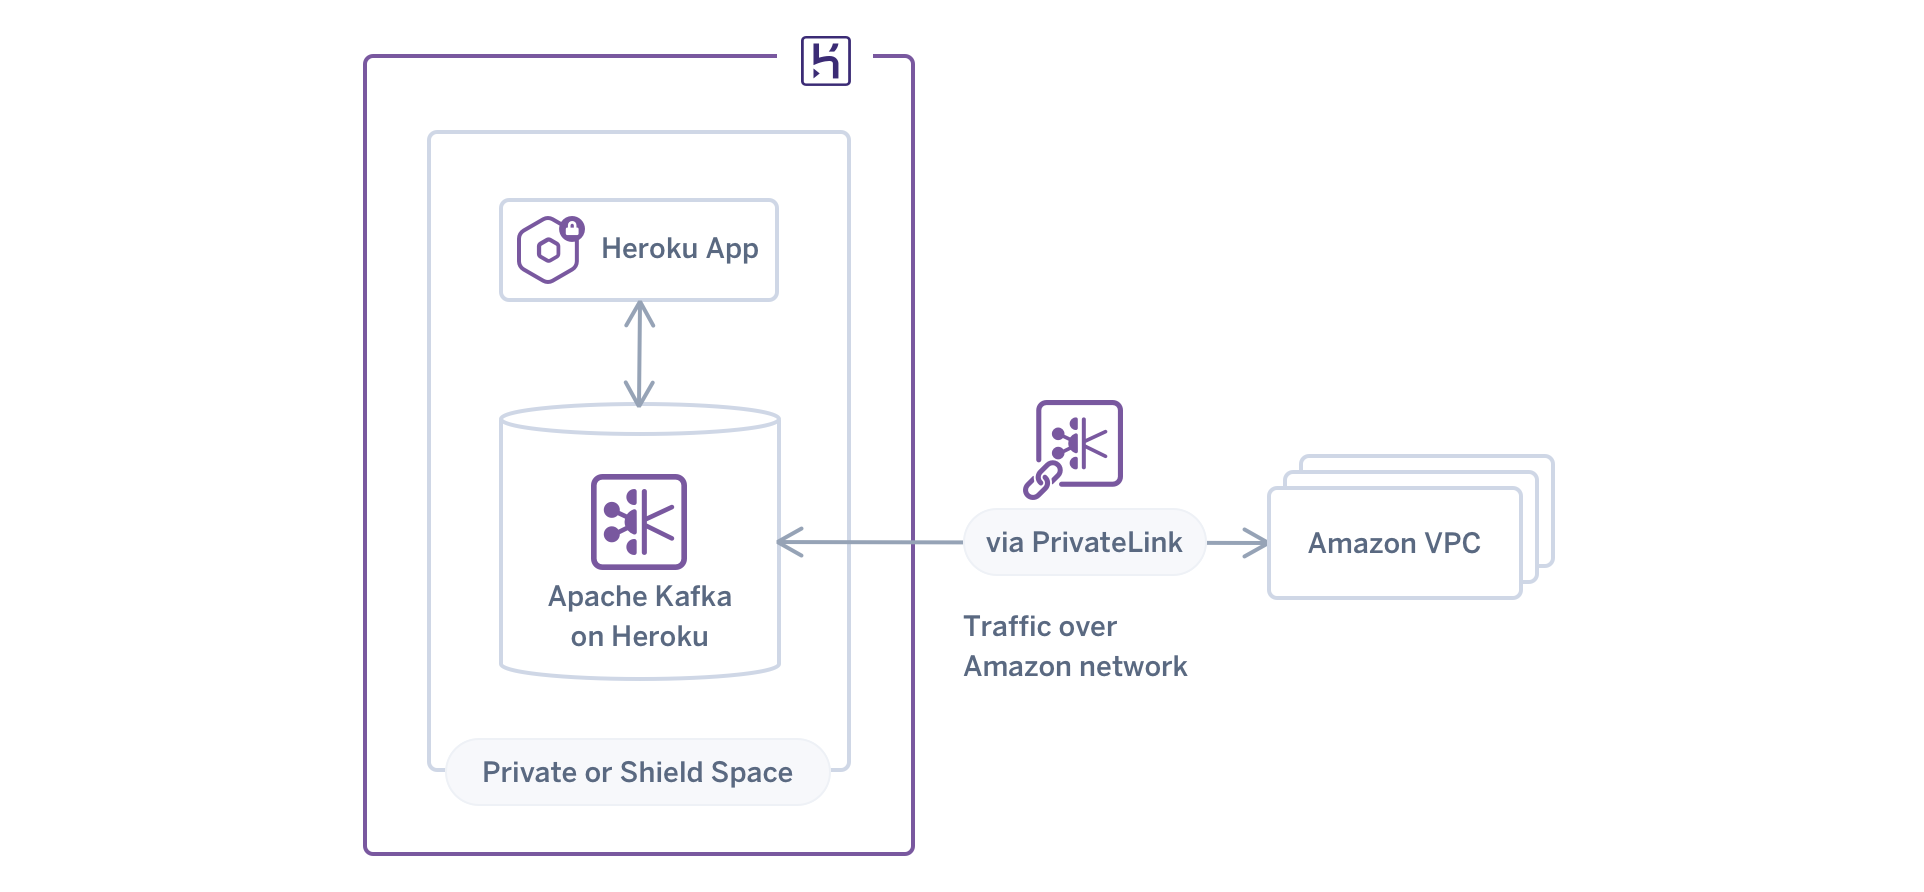 A visual showing relationships with Apache Kafka on Heroku